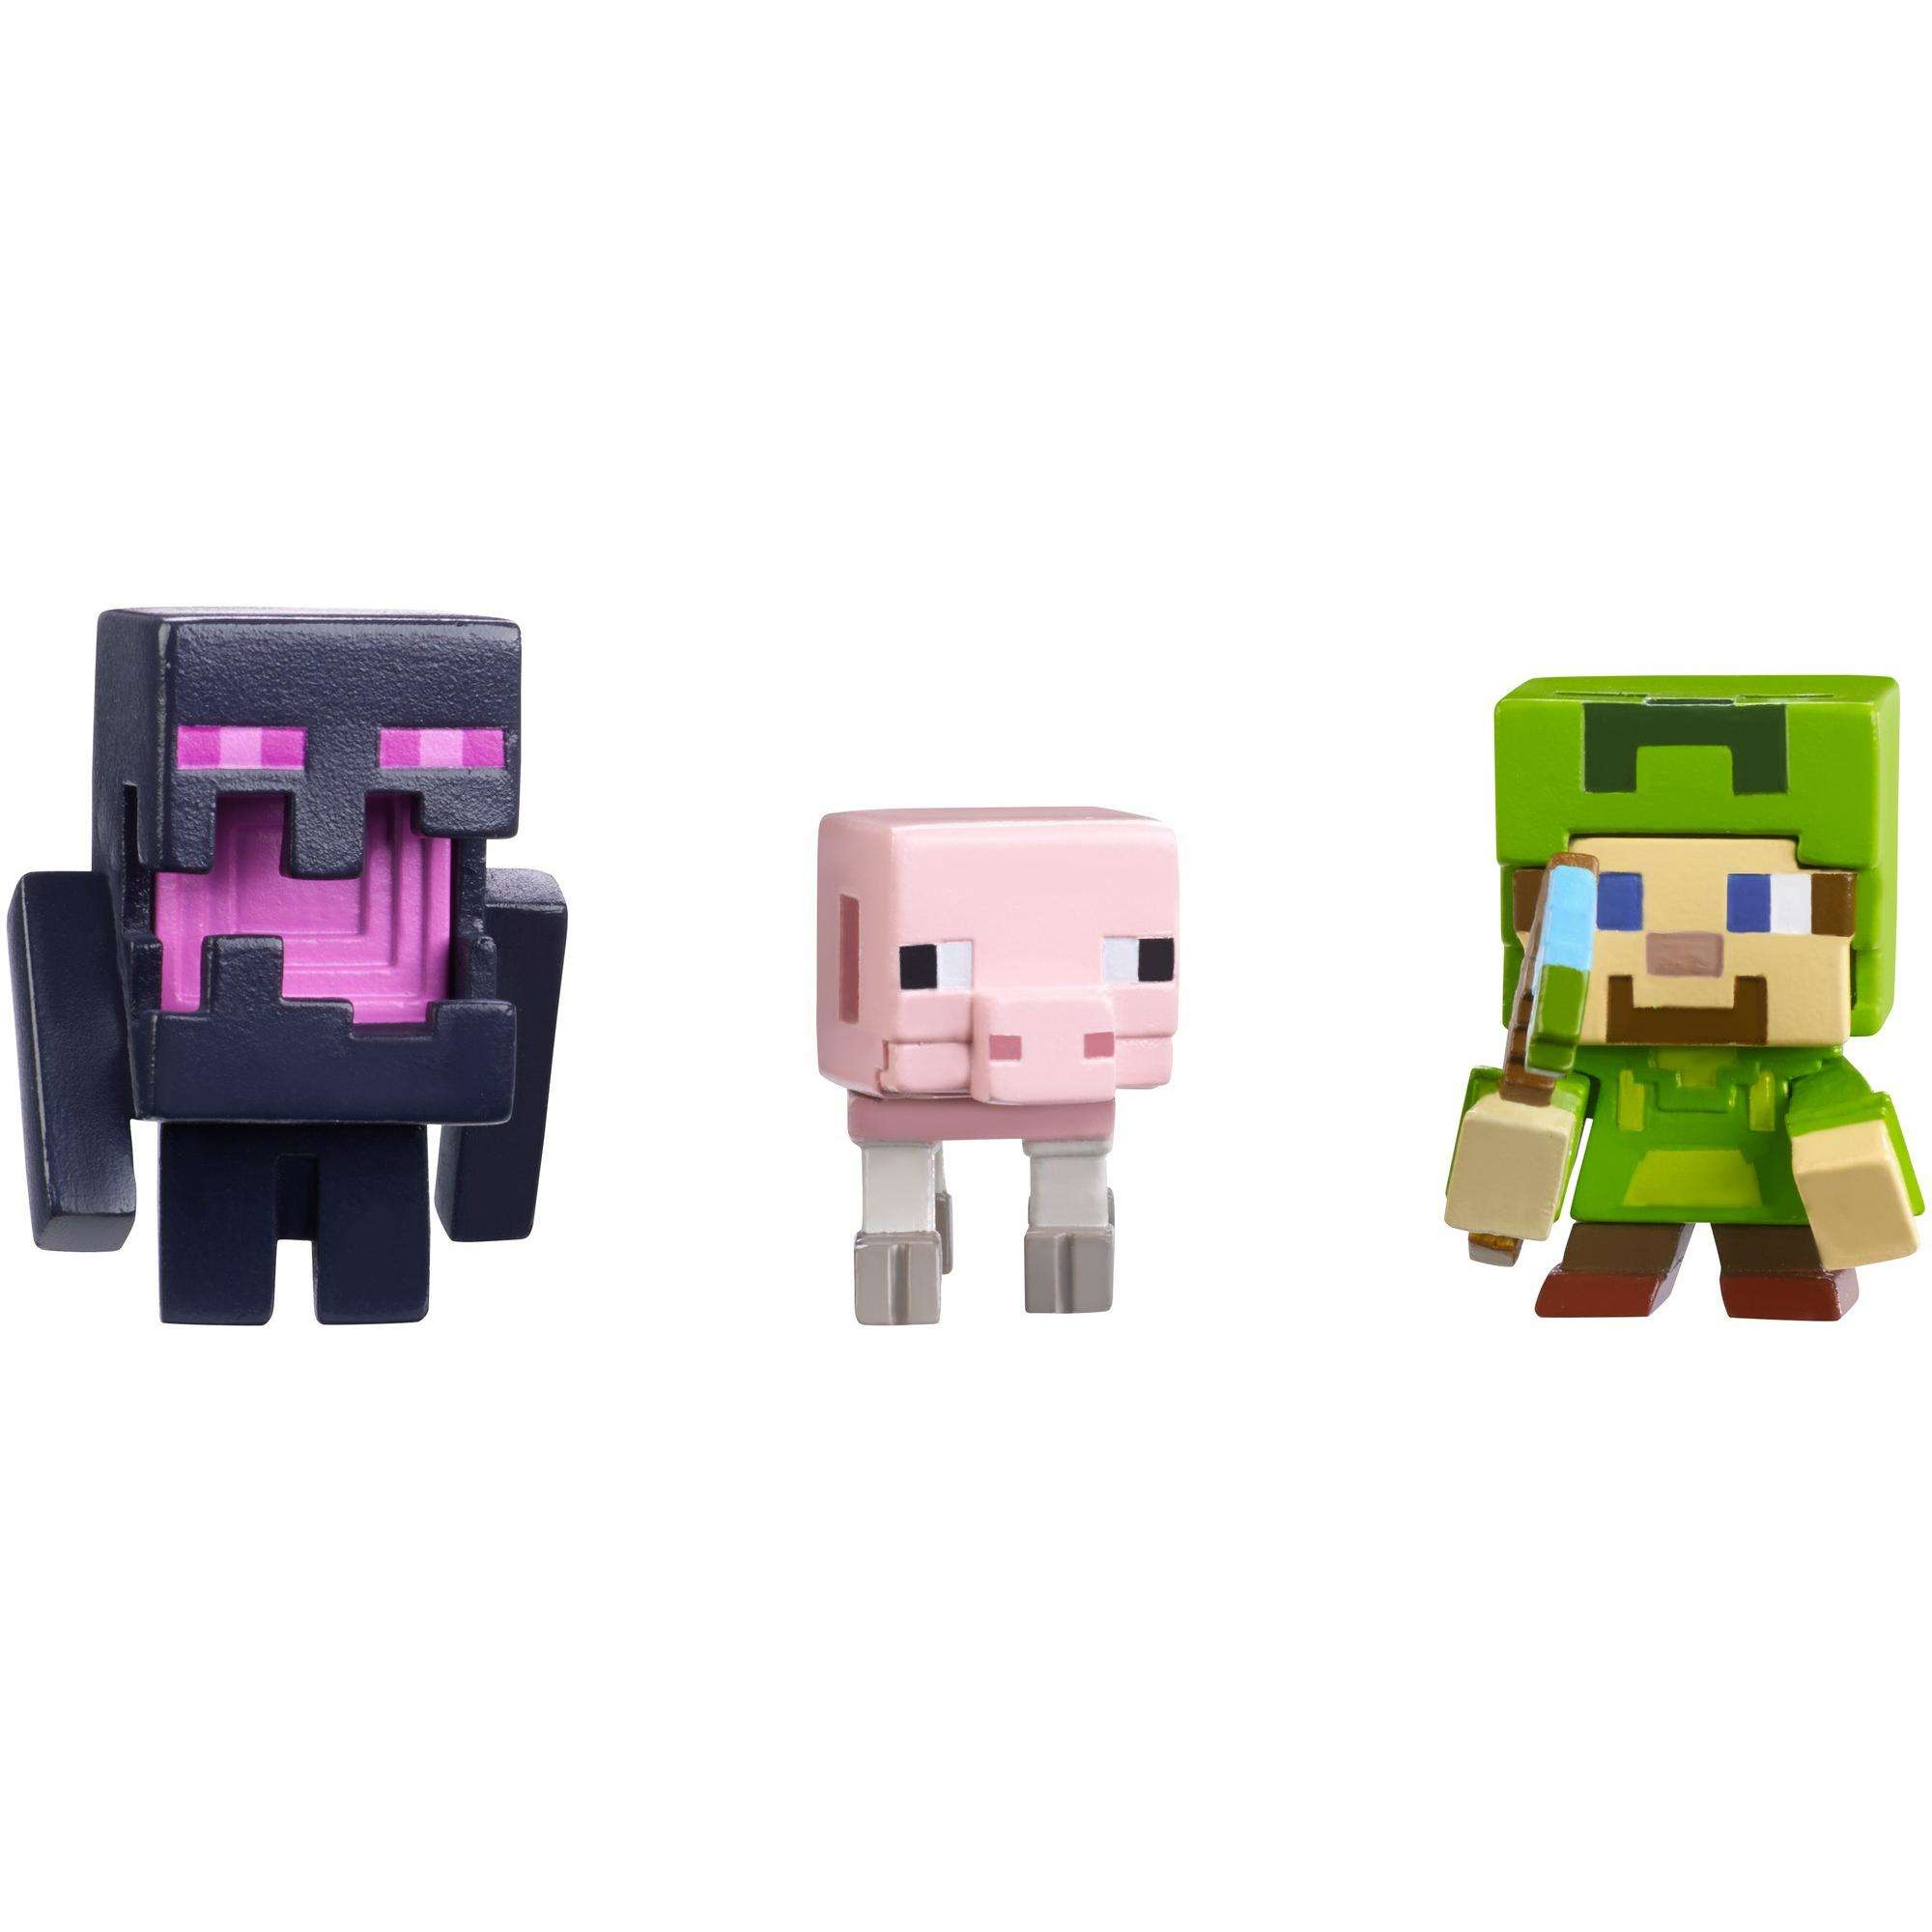 Minecraft Mini Figure Holloween 3-pack Steve w Hoodie, Skeleron Pige, and Endereal by Mattel